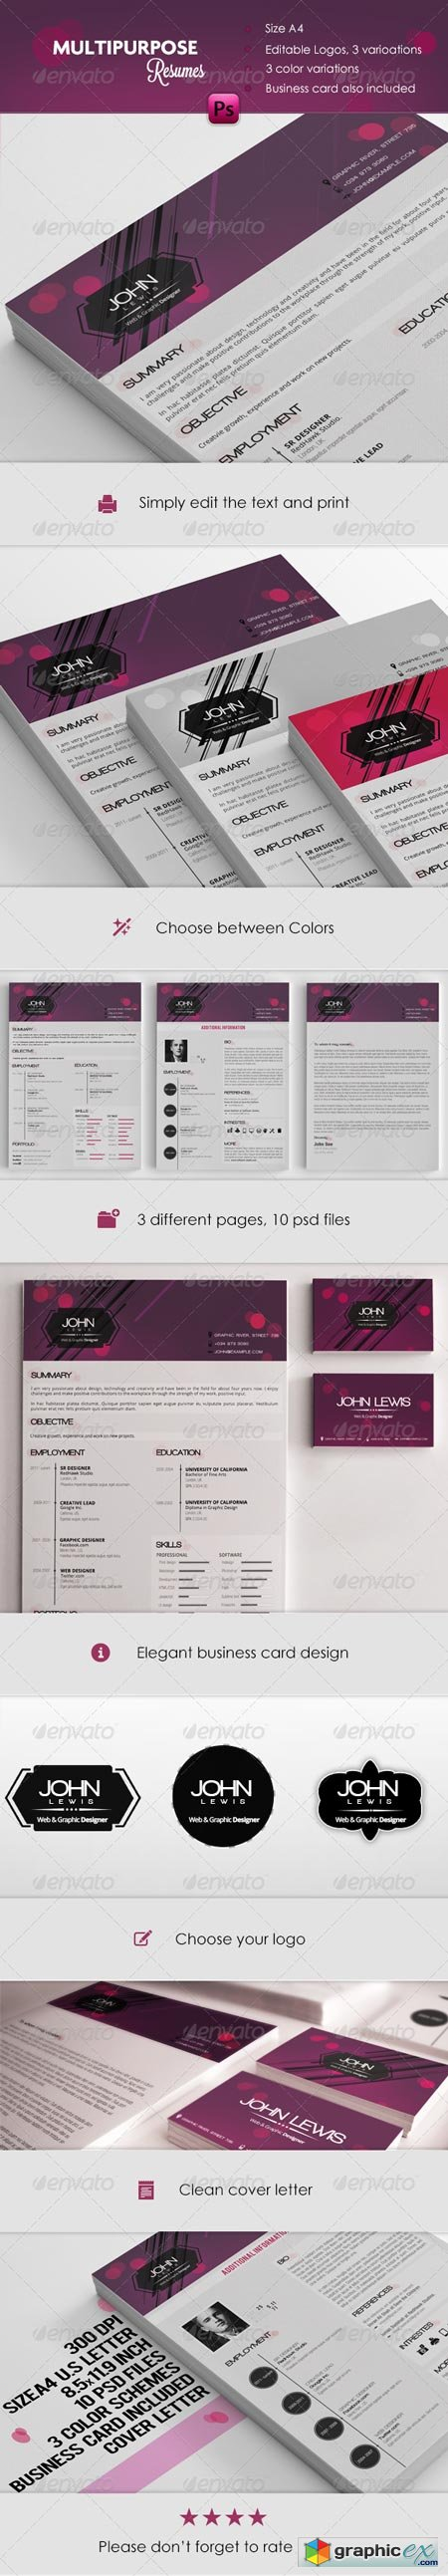 Multipurpose Resume + Cover Letters 5175558